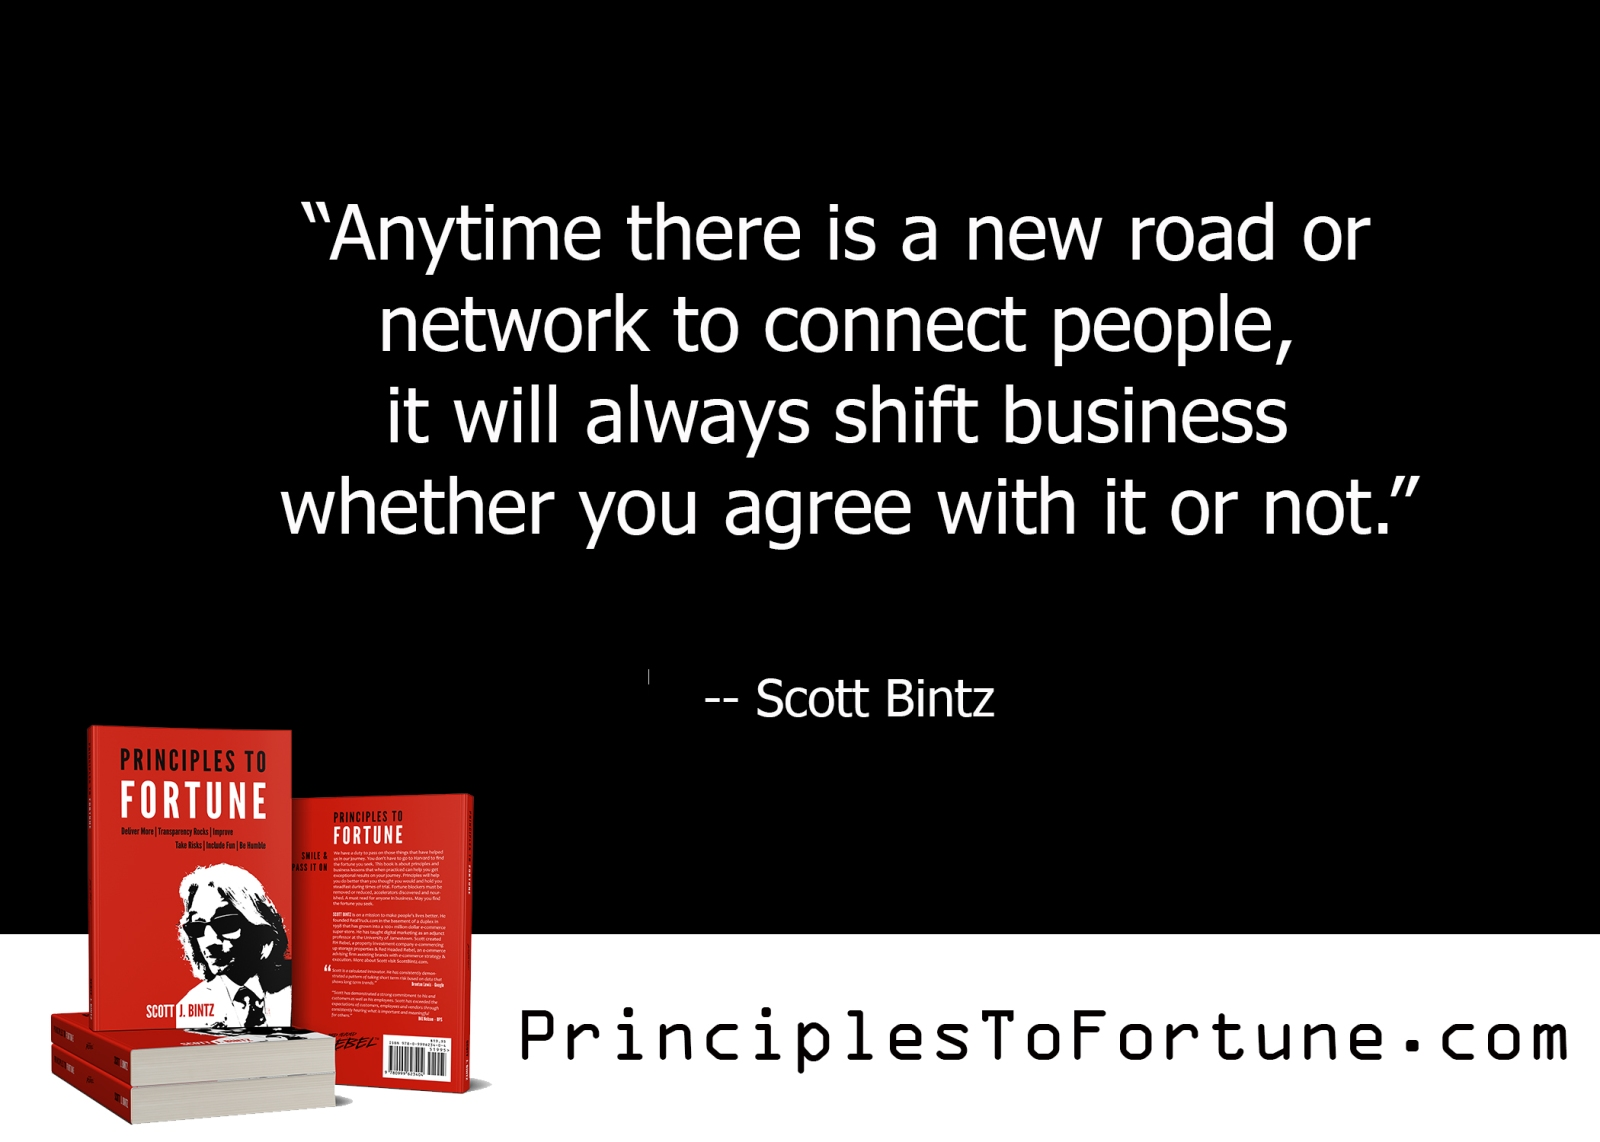 """""""Anytime there is a new road or network to connect people, it will shift business whether you agree with it or not."""" Quote from the Book, Principles To Fortune by Scott Bintz"""